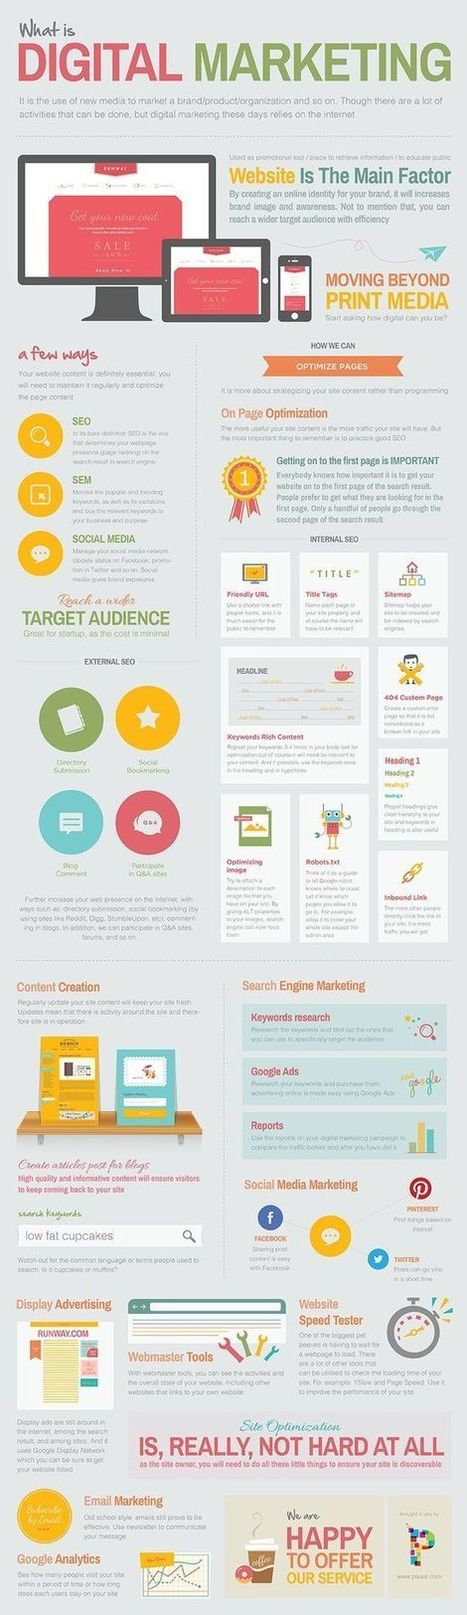 Infographic: Digital Marketing Defined | Digital Landscape | Scoop.it